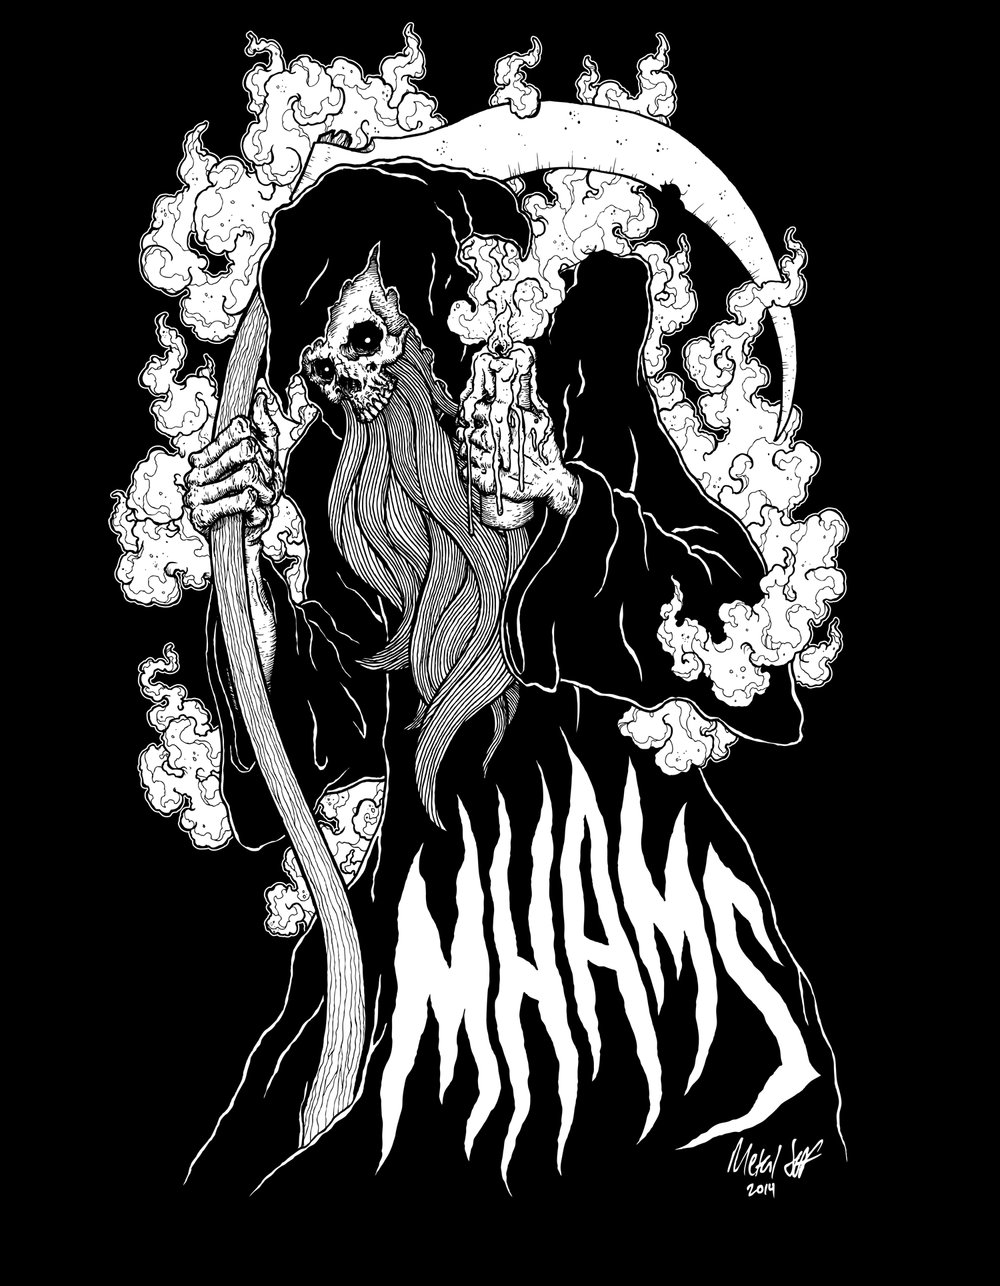 Shirt design for Lumbar/Metalheads Against MS (Aaron Edge).